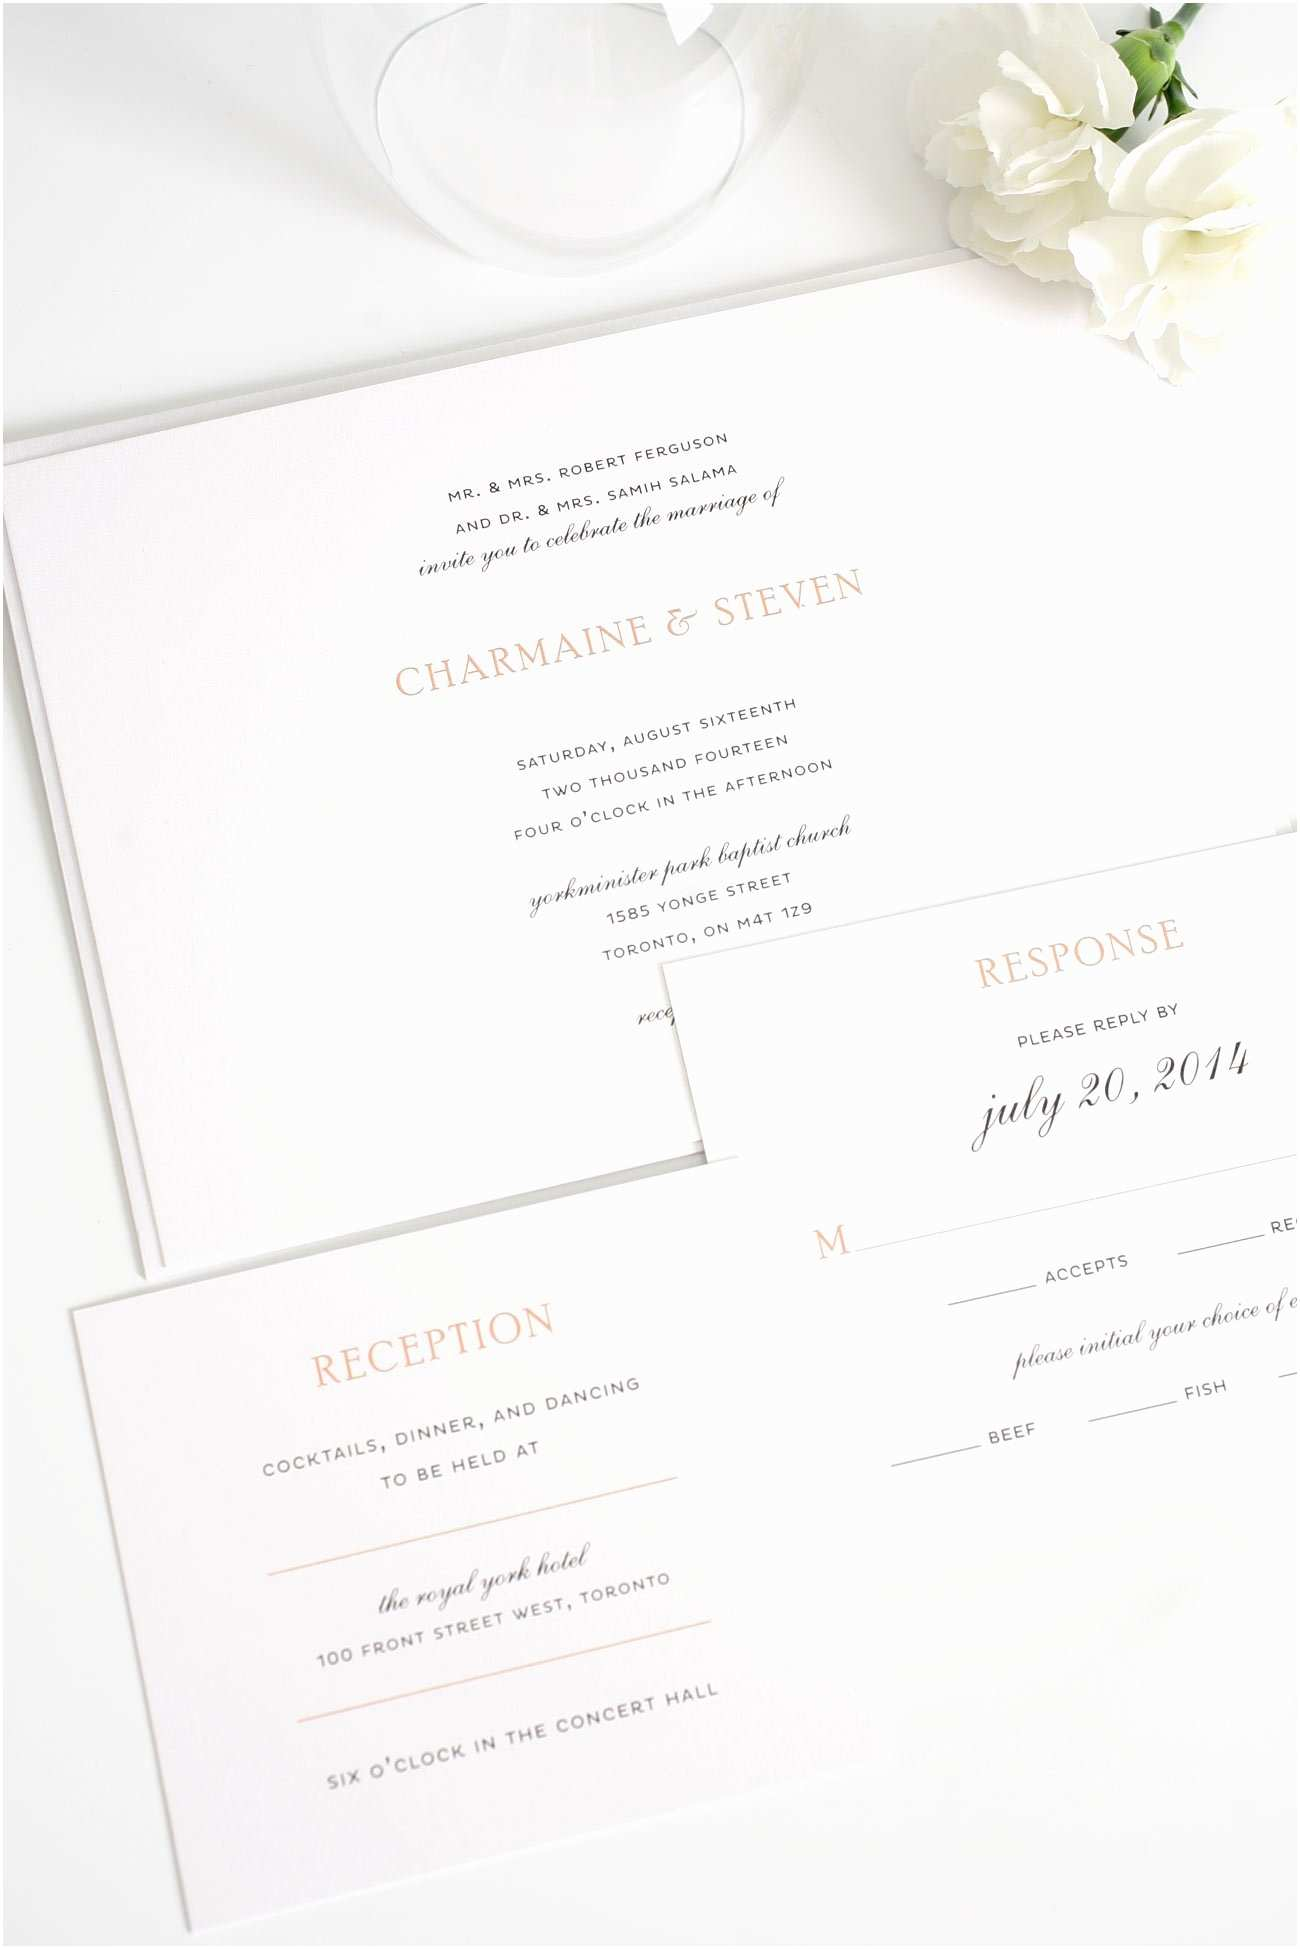 Simple Elegant Wedding Invitations Elegant Wedding Invitations In Peach – Wedding Invitations